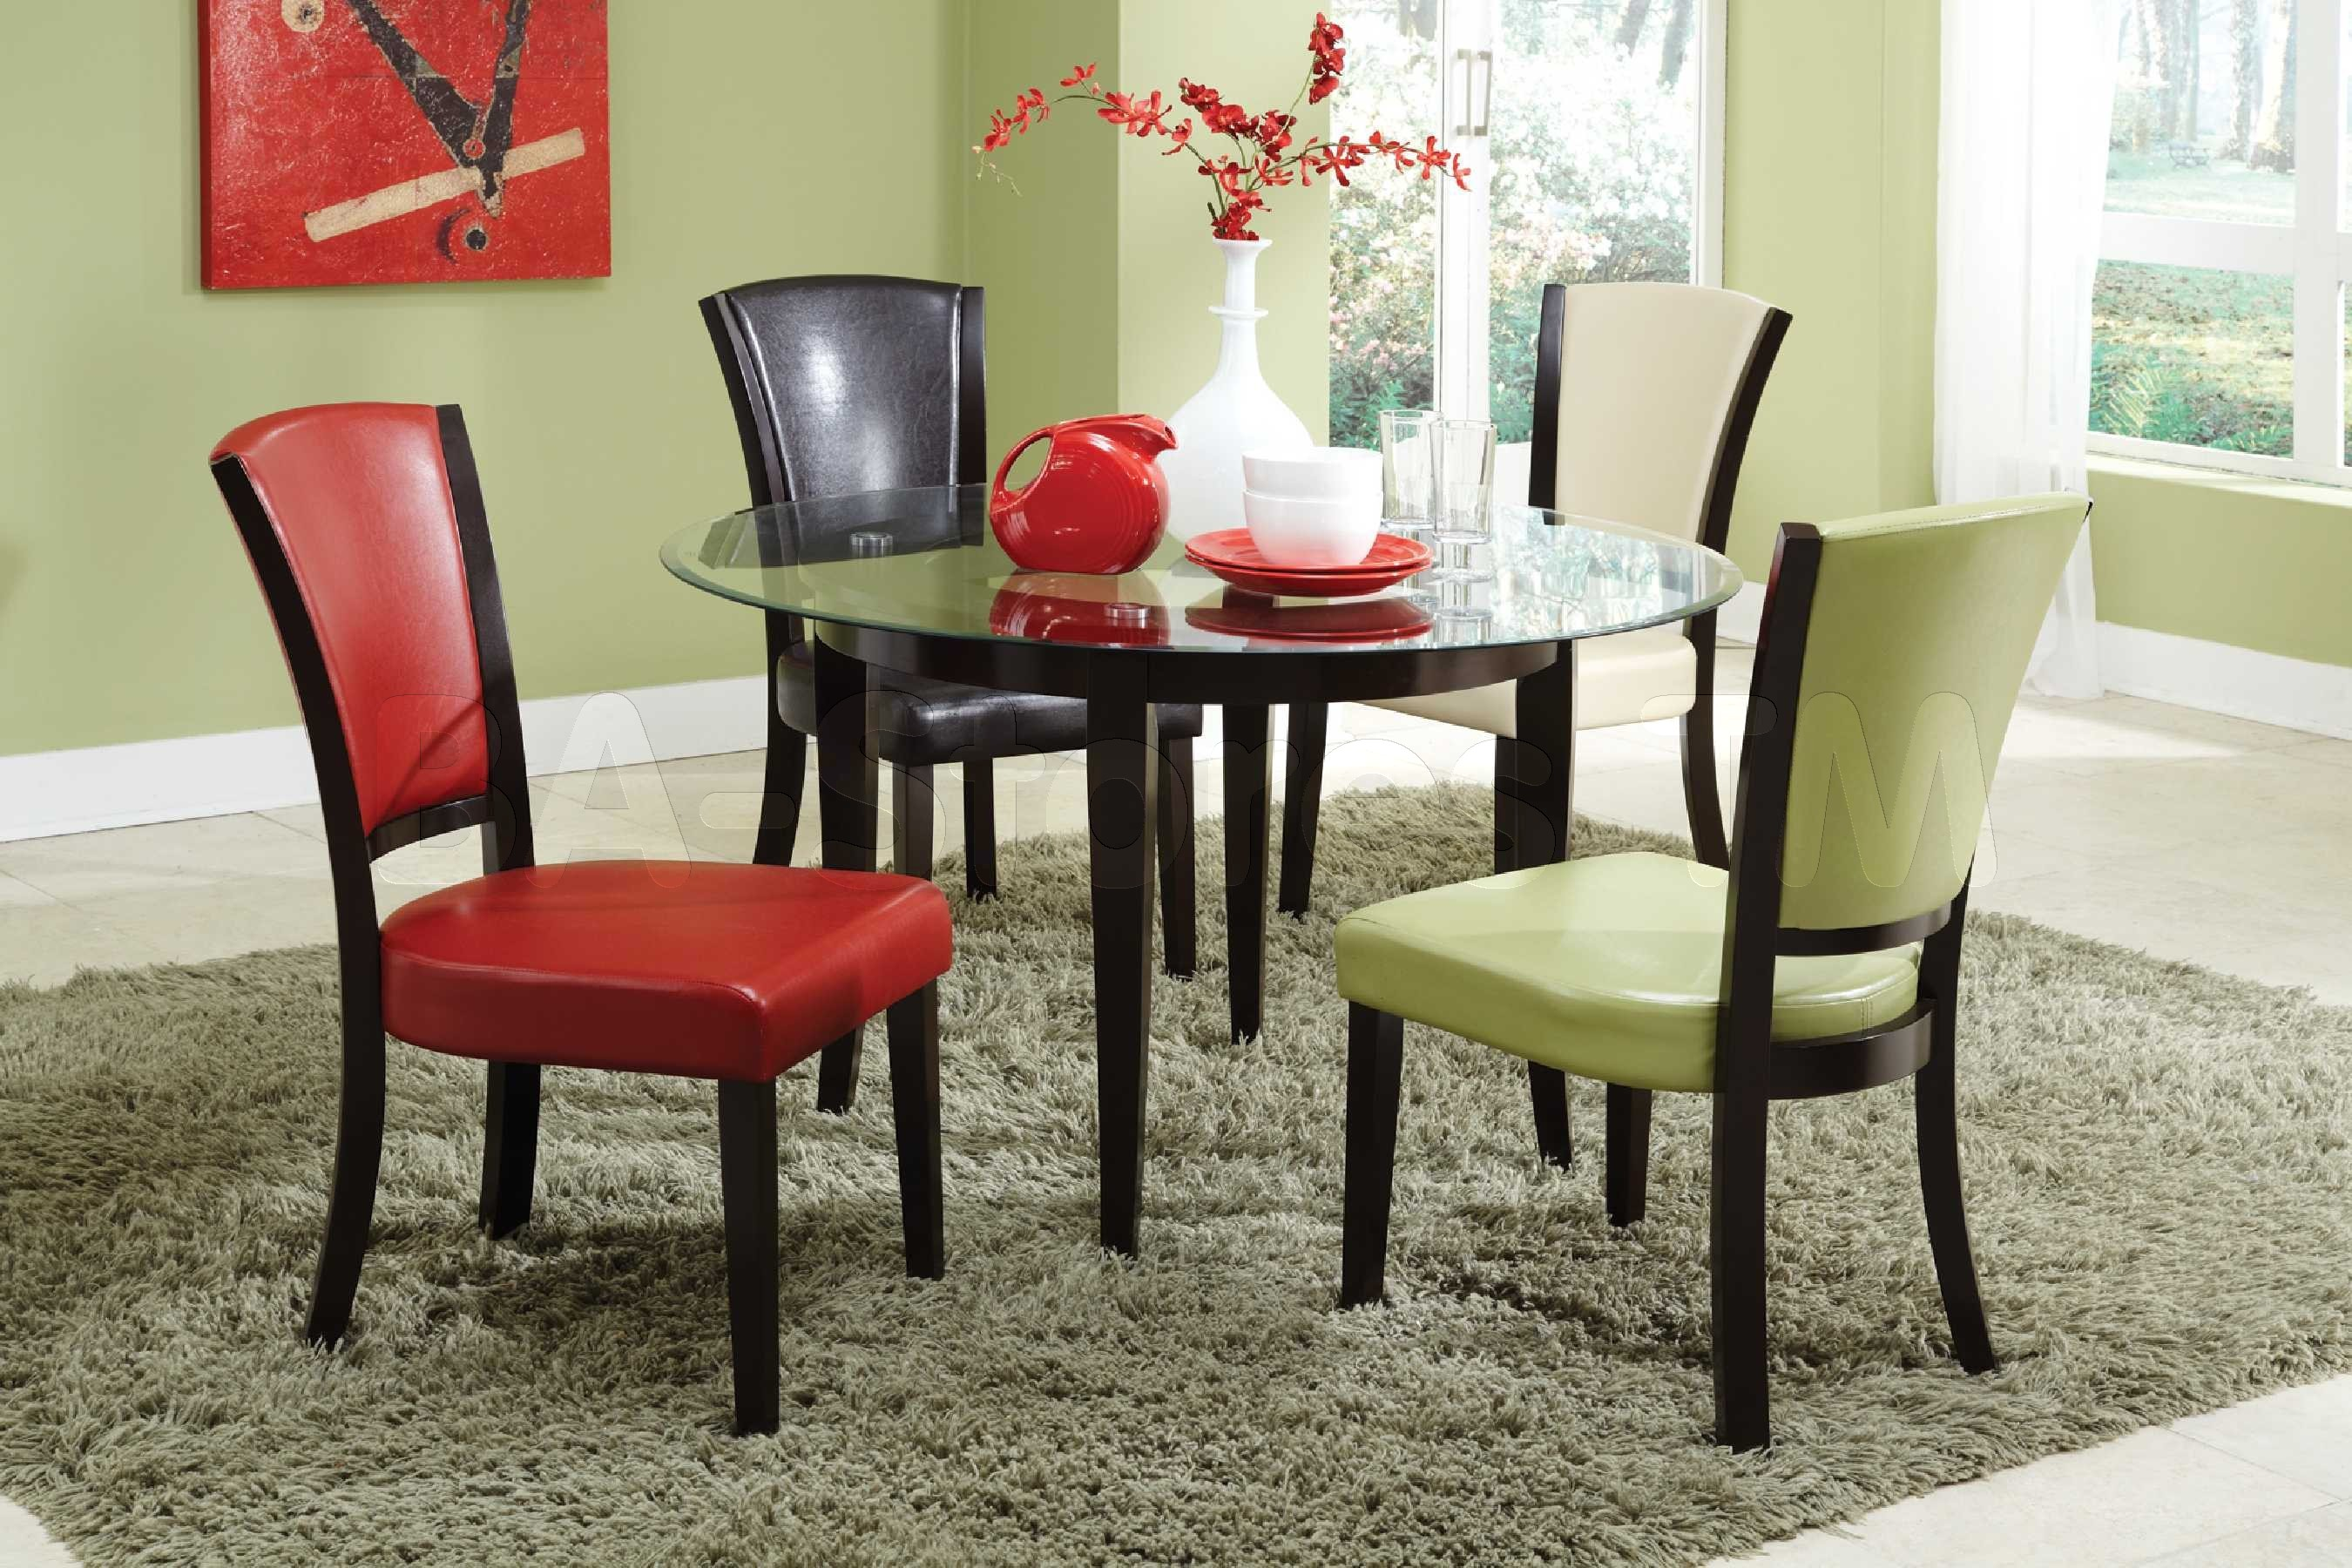 Colorful Chairs From Glass Dining Table Set Inside Open Dining Area With  Grey Carpet Rug